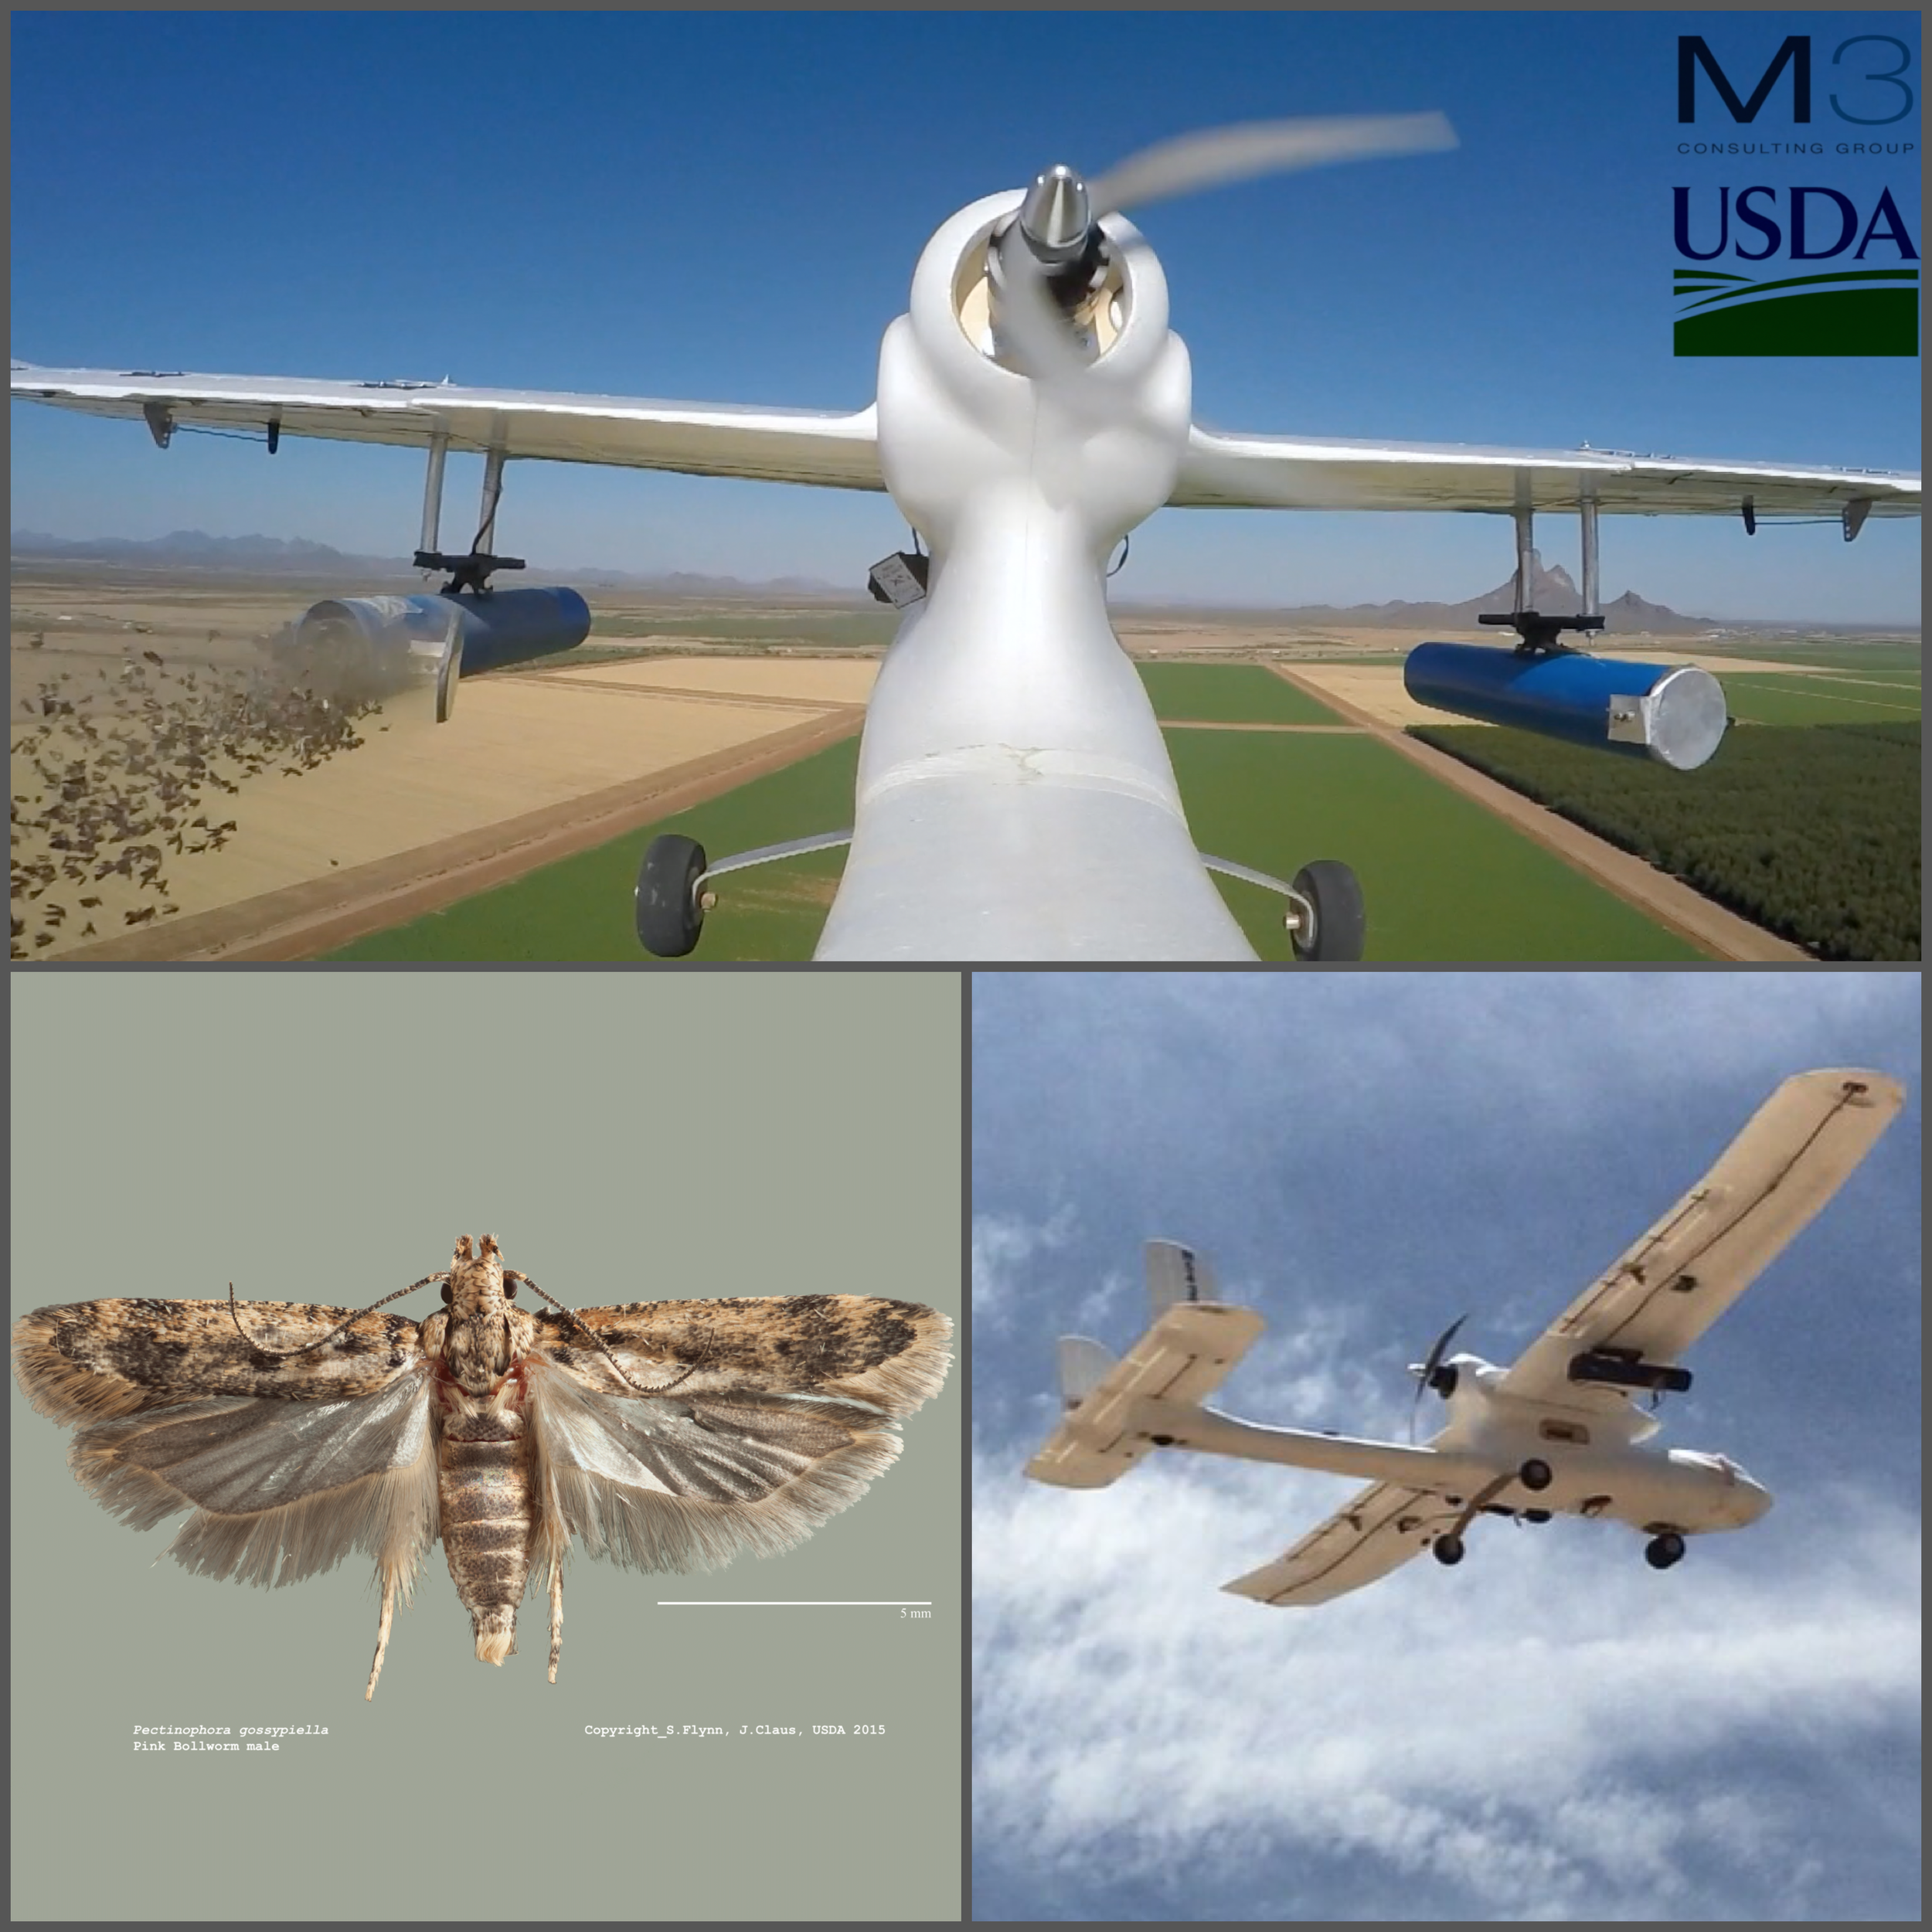 Top: First use of UAS to release Sterile Insects. Lower left: Pink Bollworm. Lower Right: M3 Desert Cardinal UAS